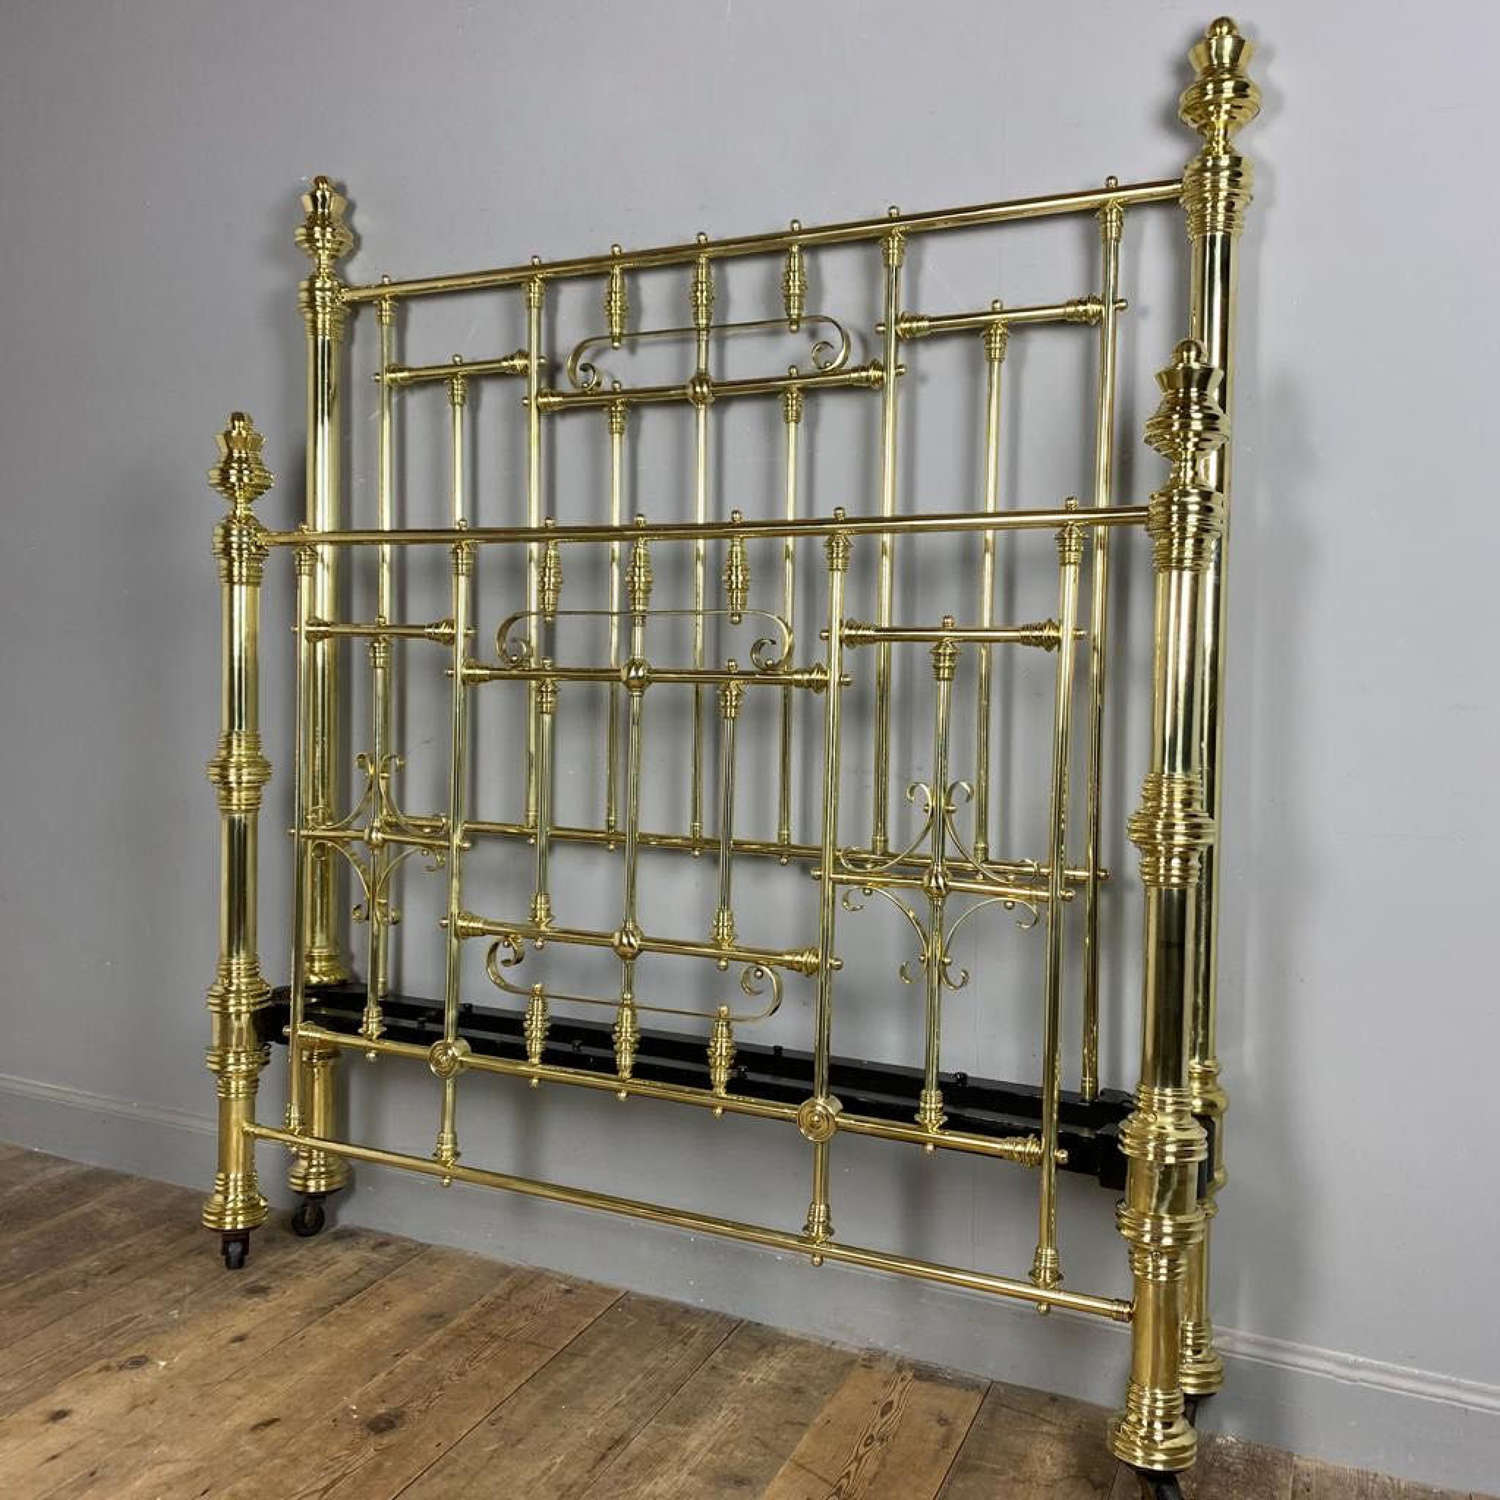 Hoskins & Sewell Double Brass Bed